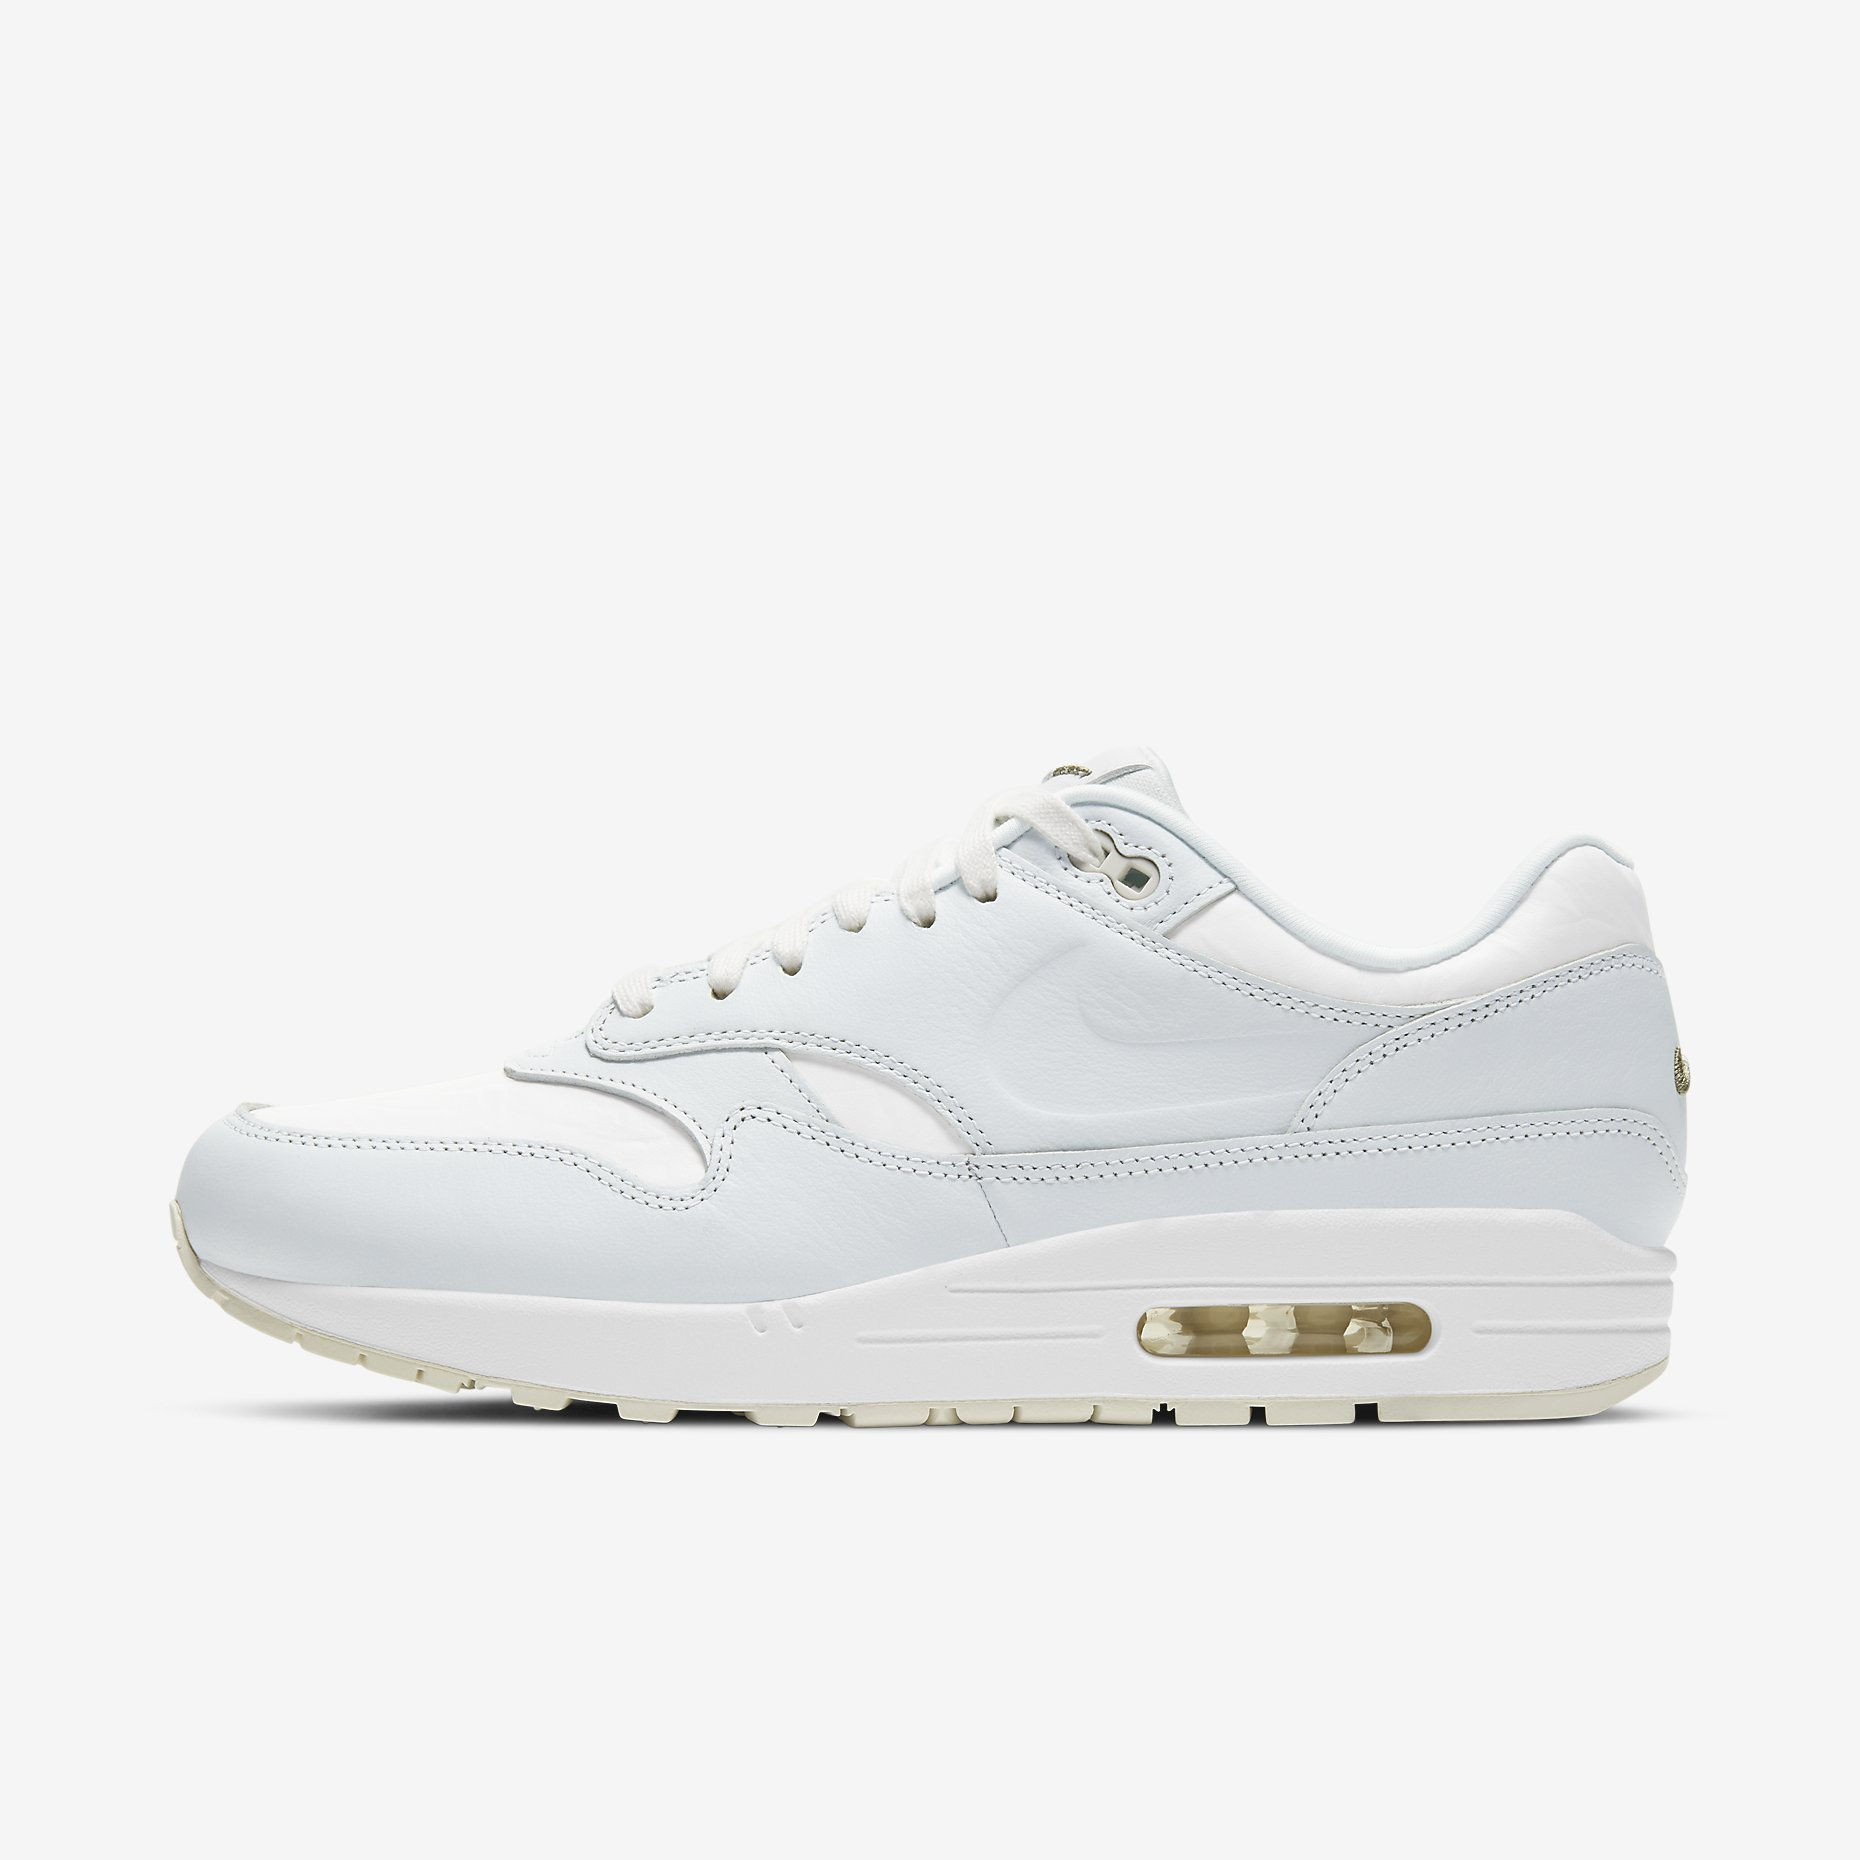 Men's Nike Air Max 1 'Yours'}